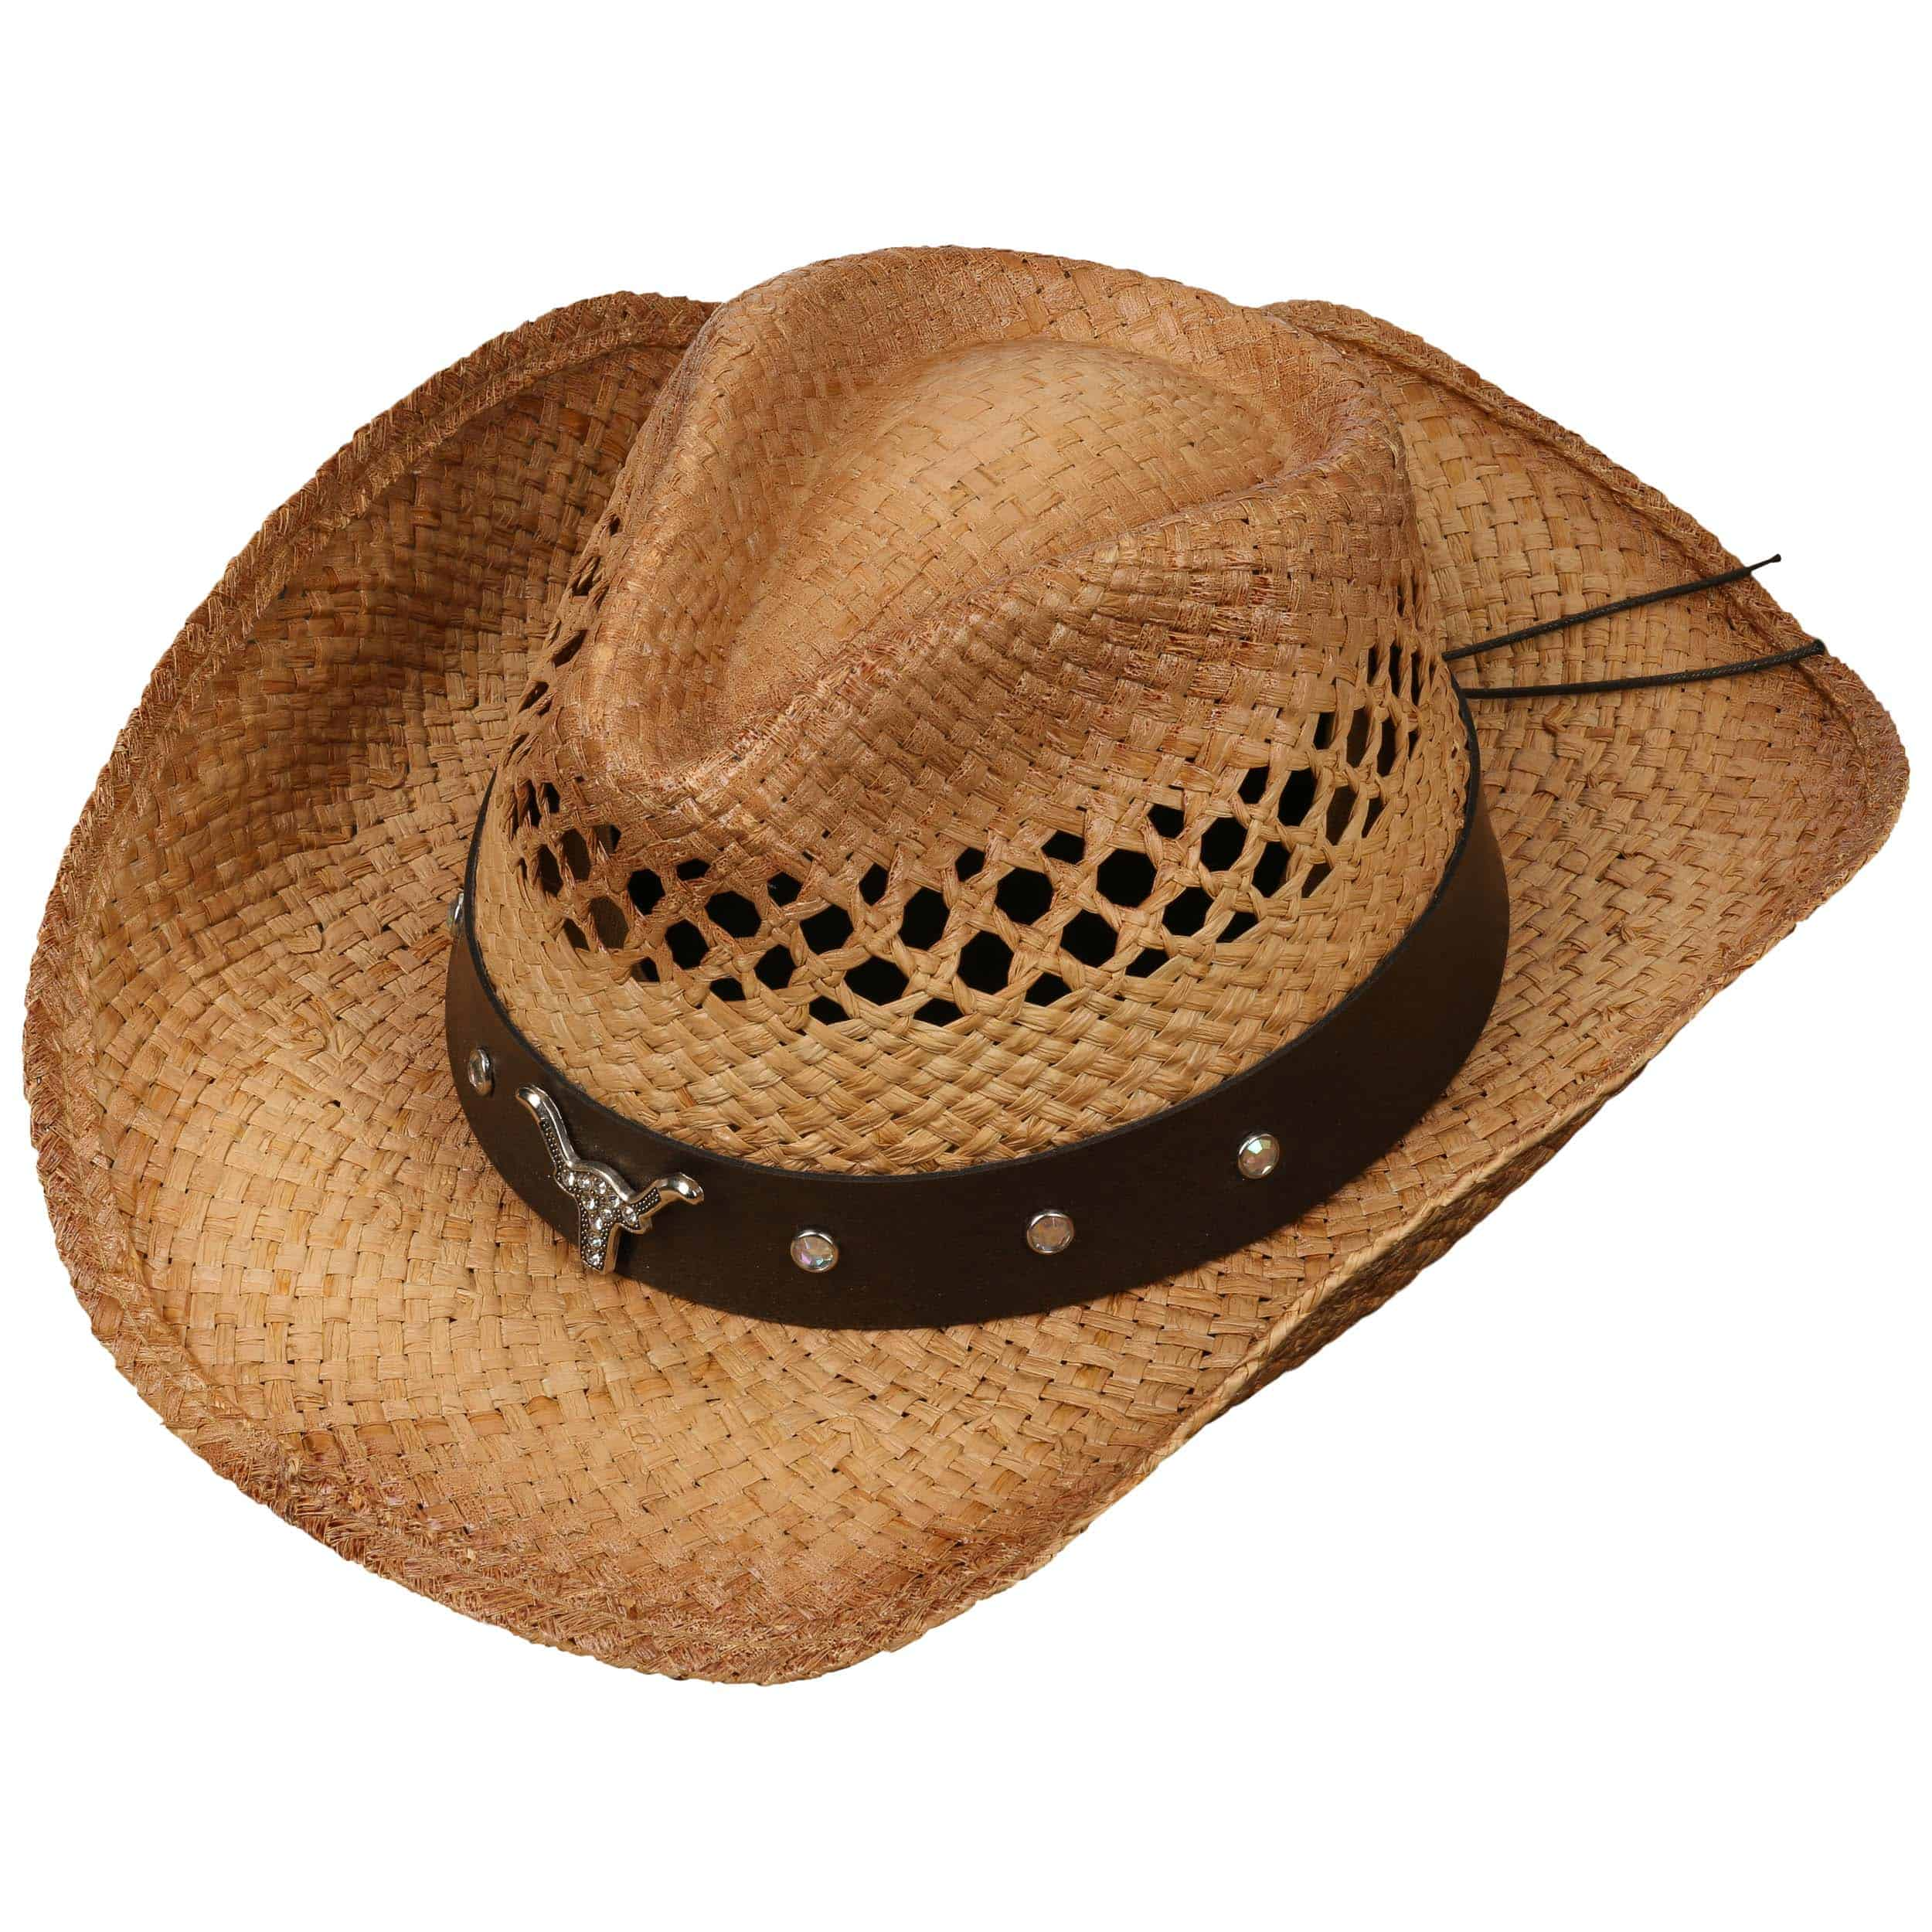 6ae04b01959 Longhorn Western Straw Hat by Conner - nature 1 ...